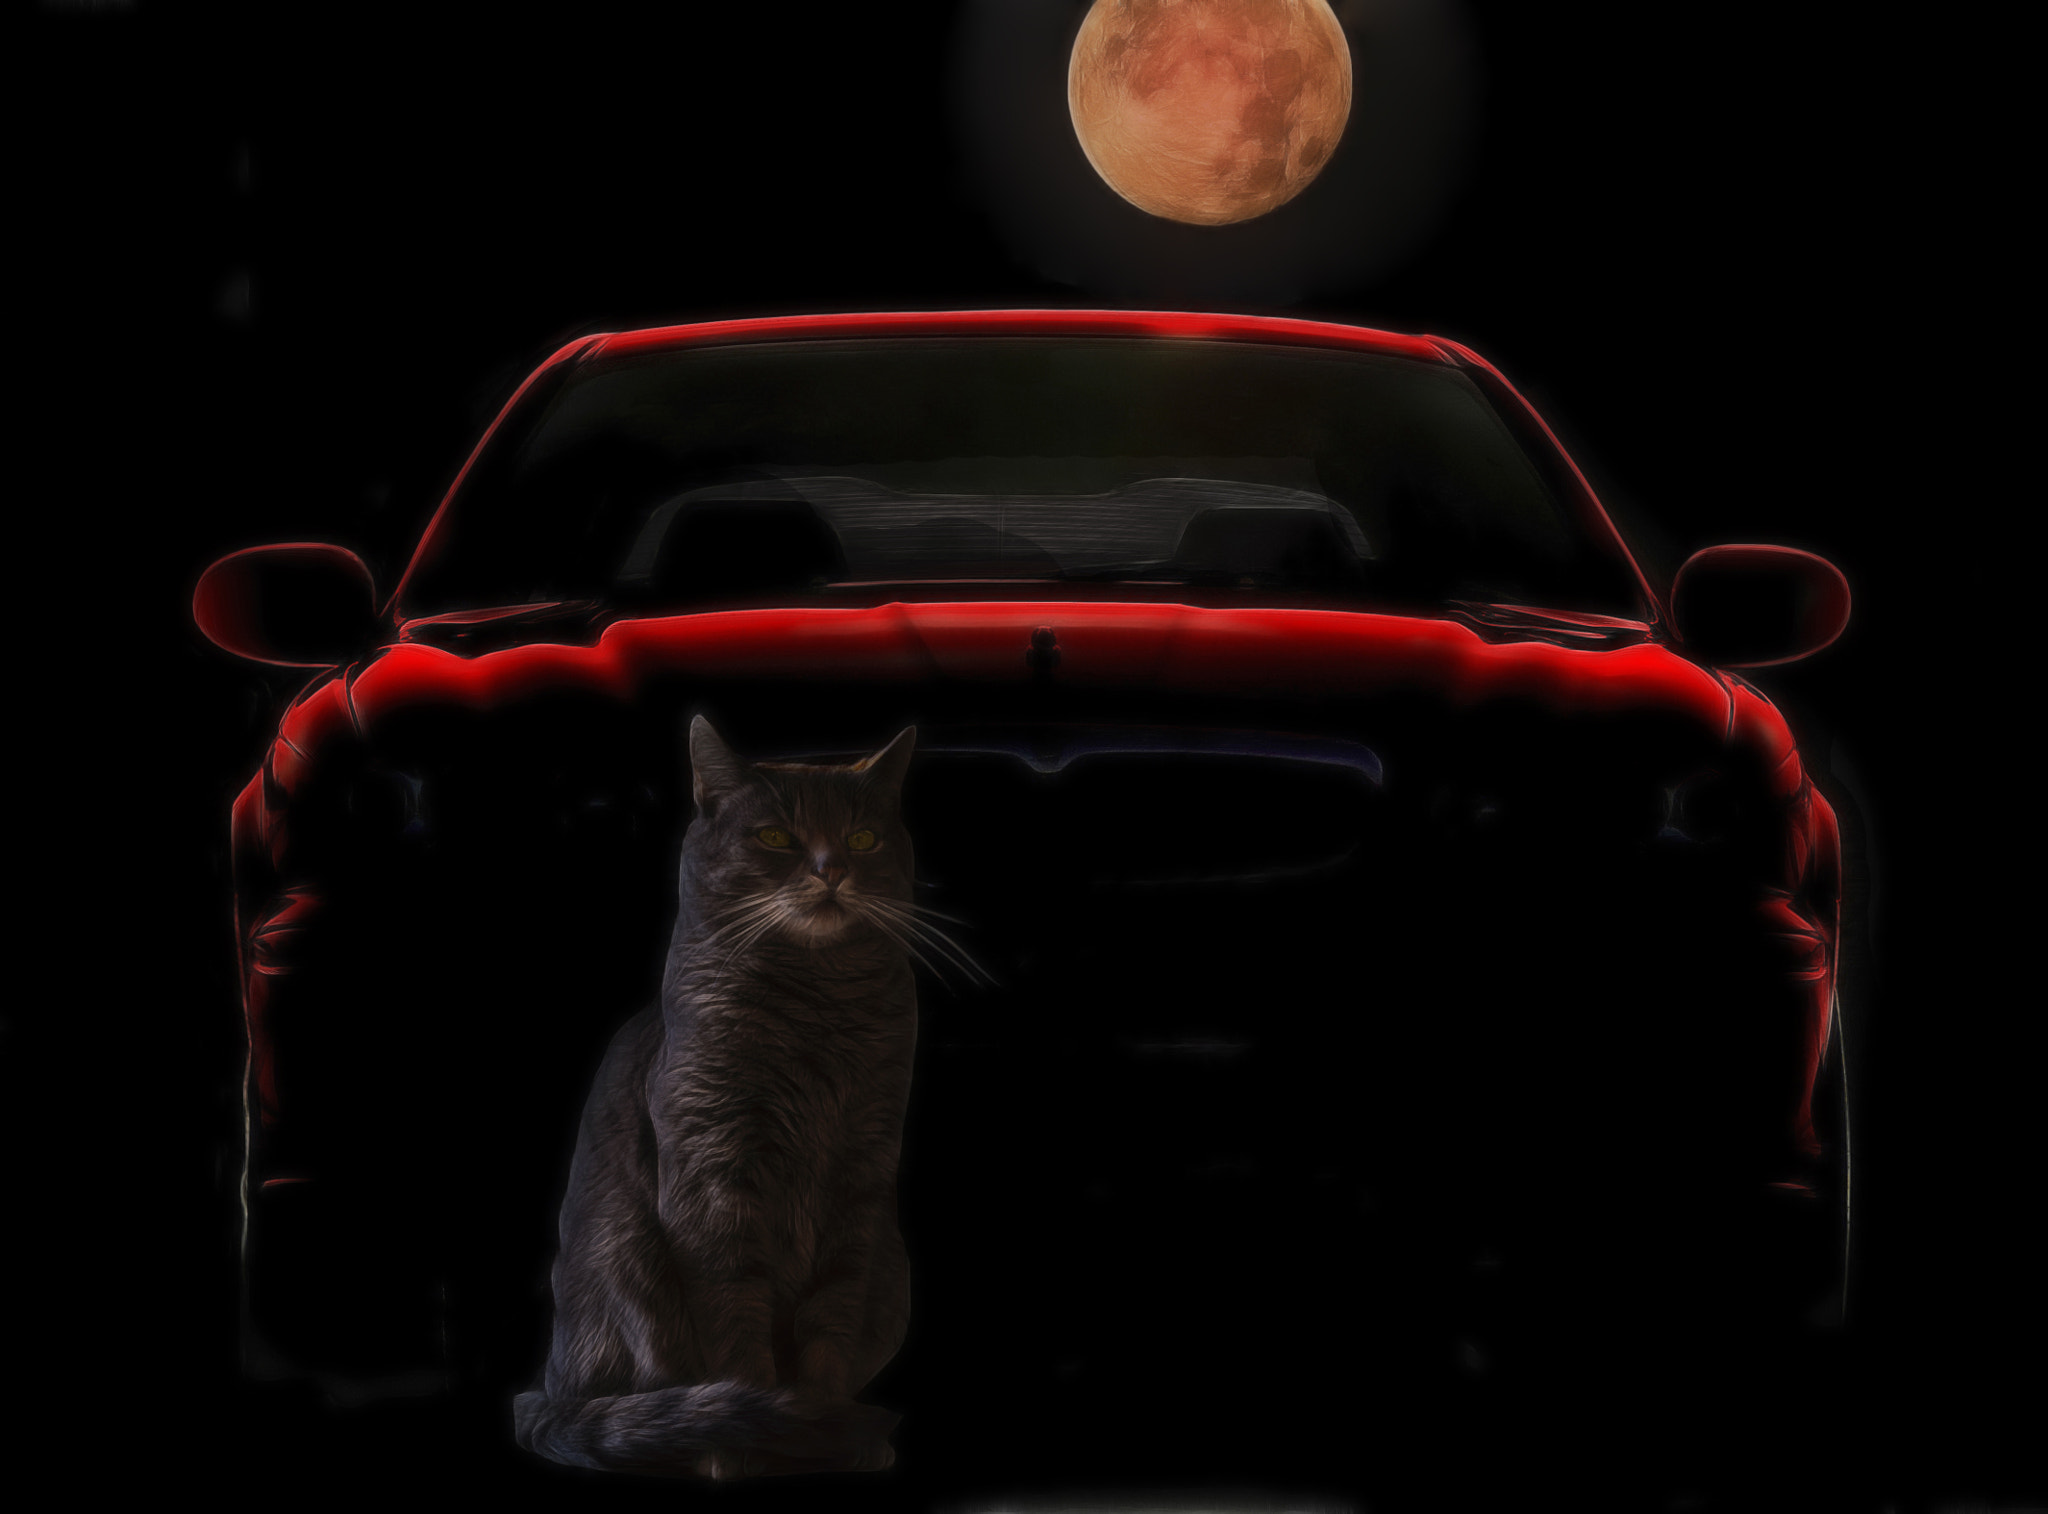 Photograph not every cat is grey by night by Joachim G.  Pinkawa on 500px